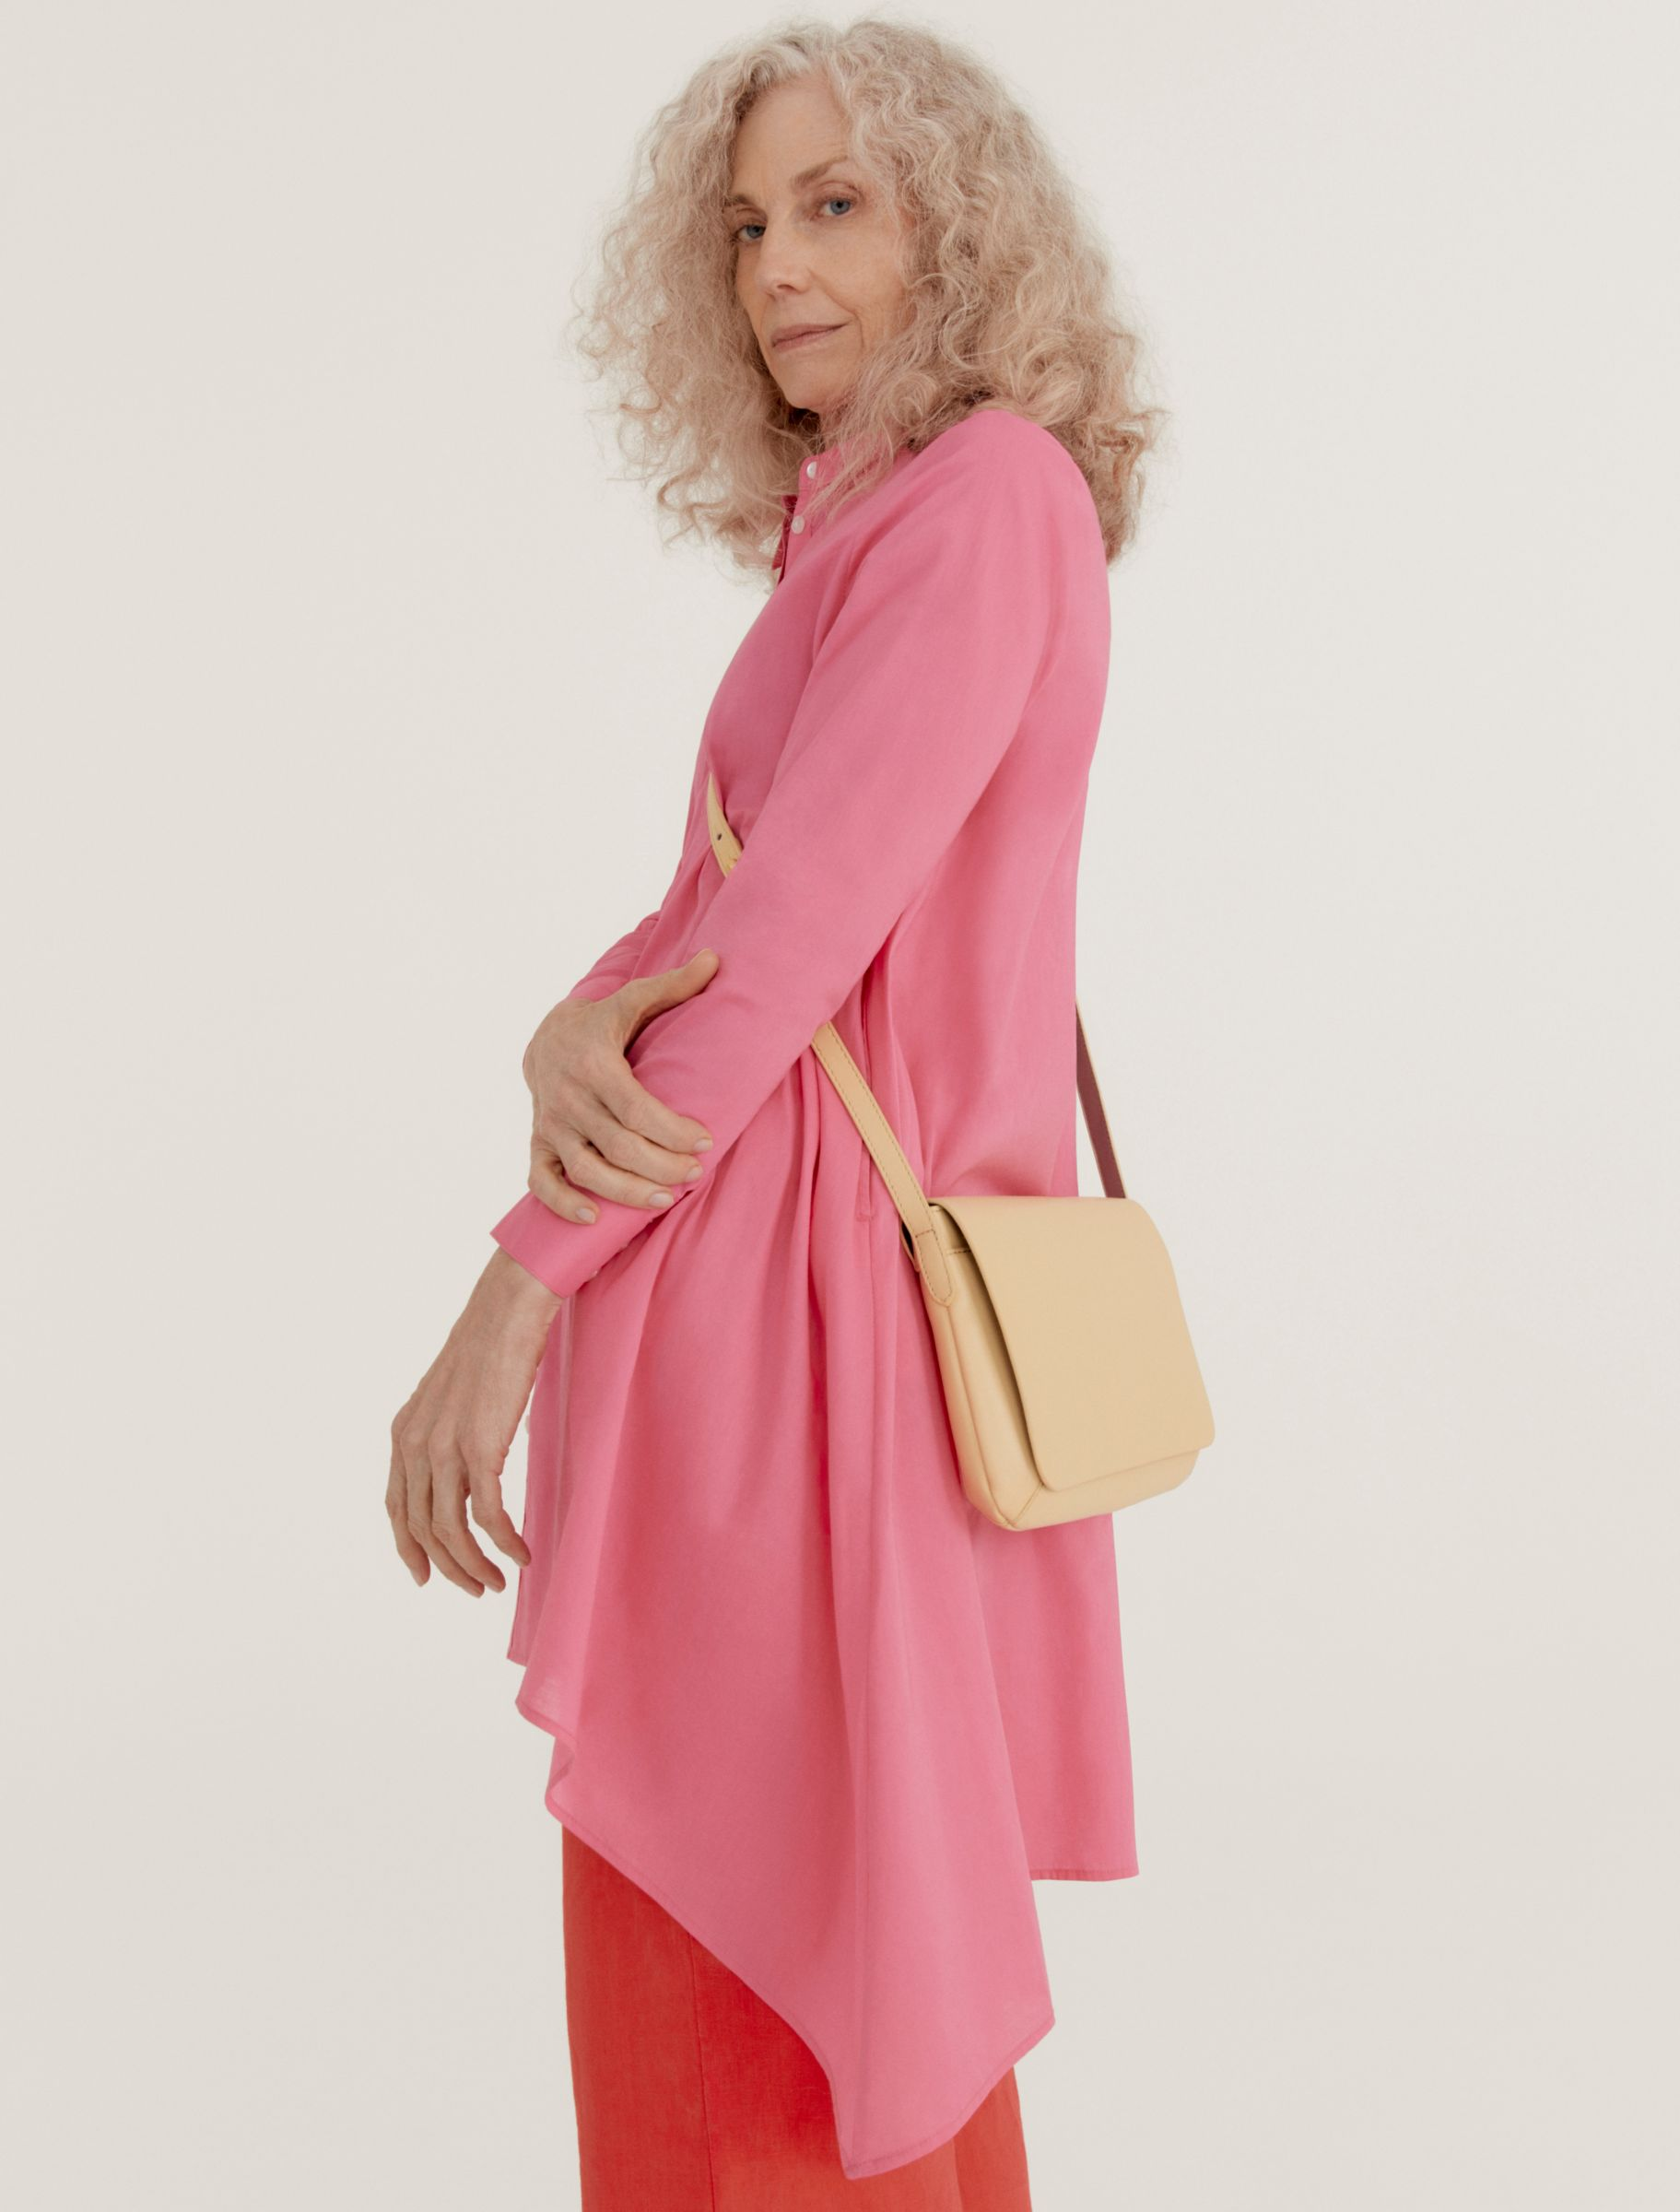 Woman wearing pink shirt and red trousers